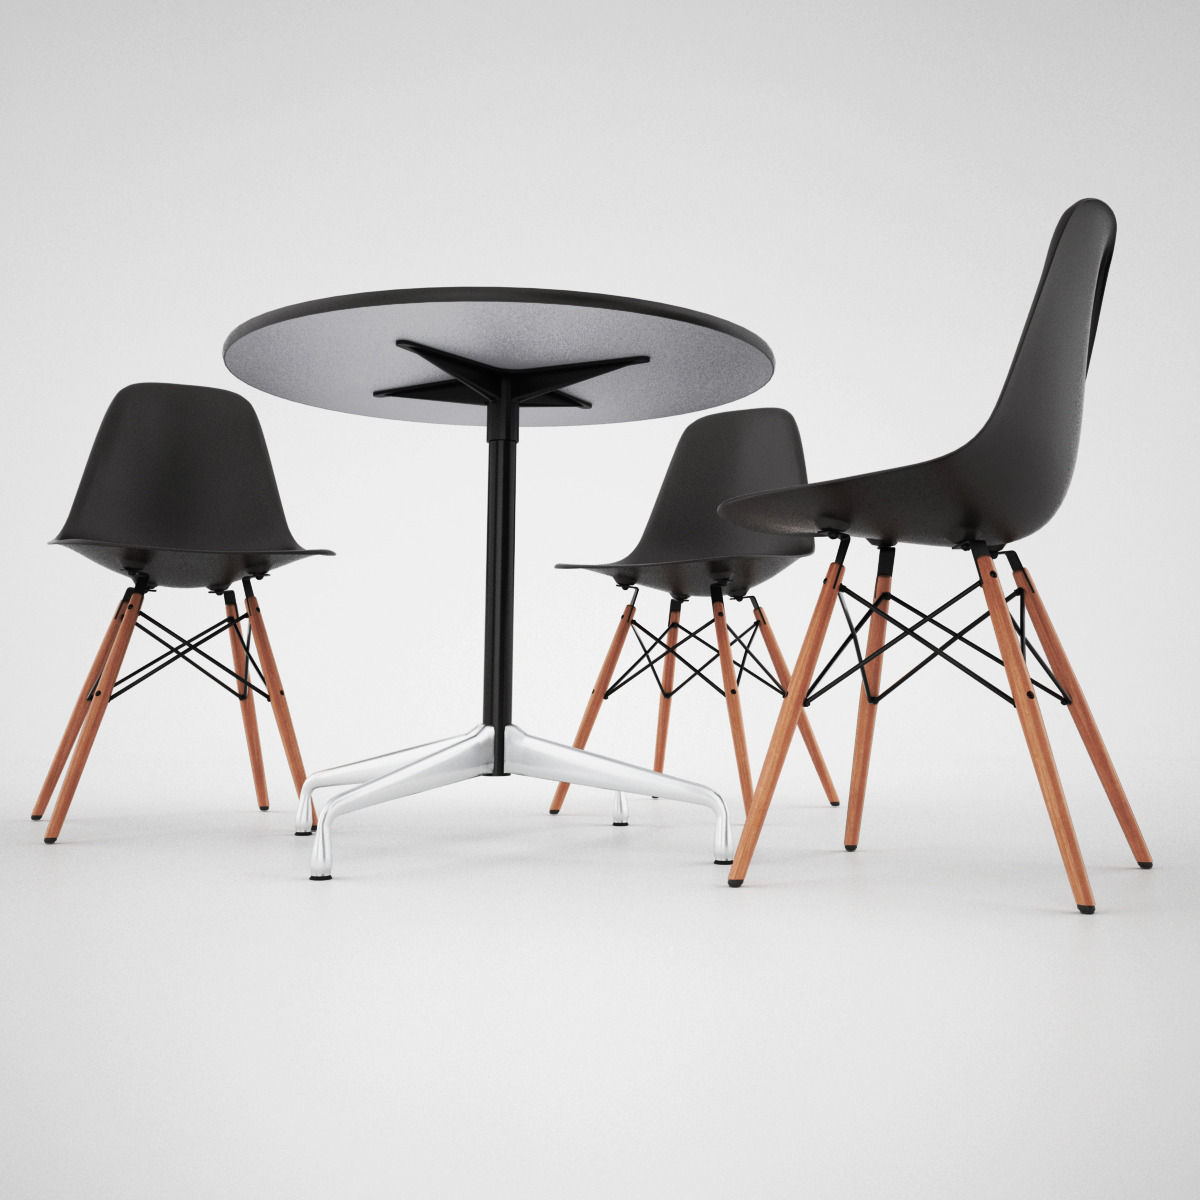 Vitra dsw chair and eames table 3d model max obj fbx for Chaise eames dsw vitra